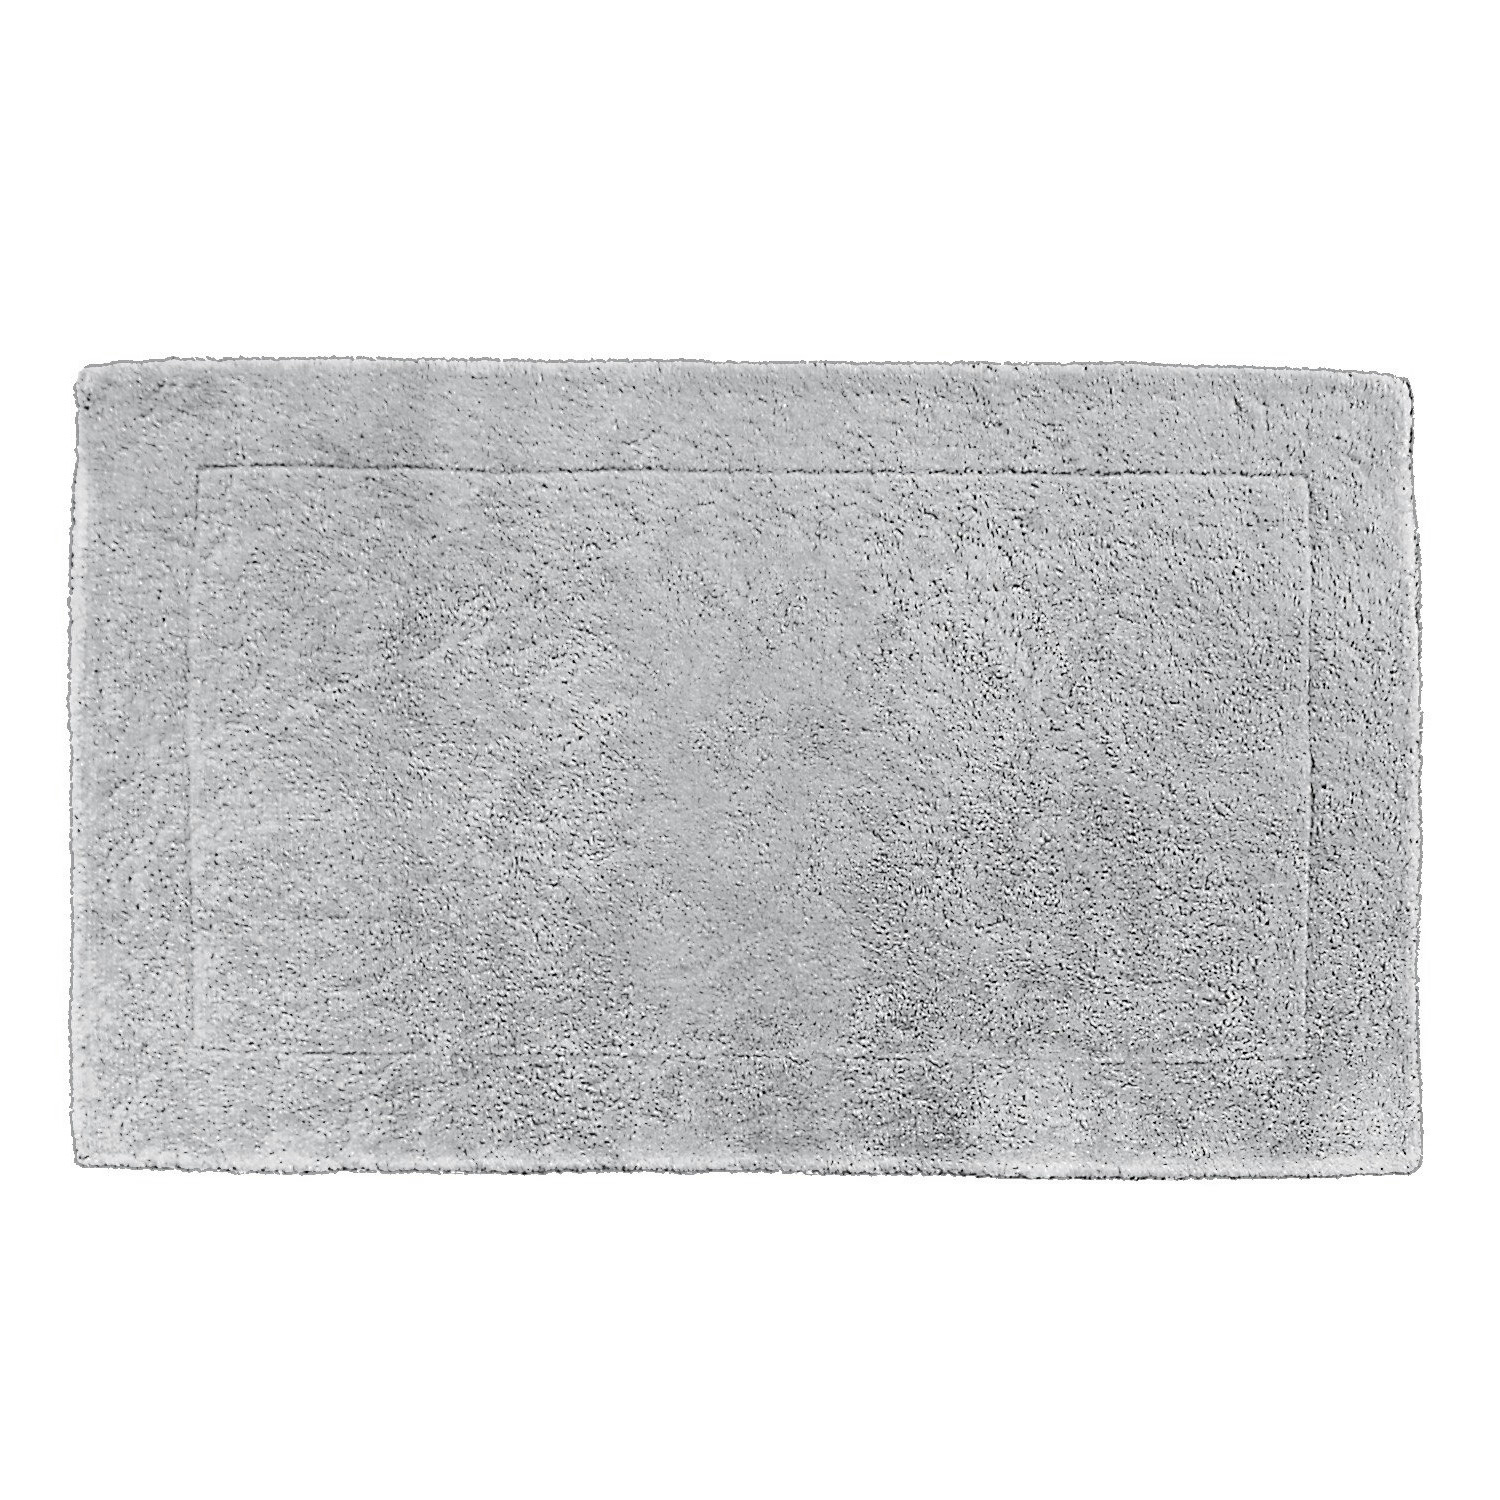 Double Sided Bath Rugs - Assorted Colours-7